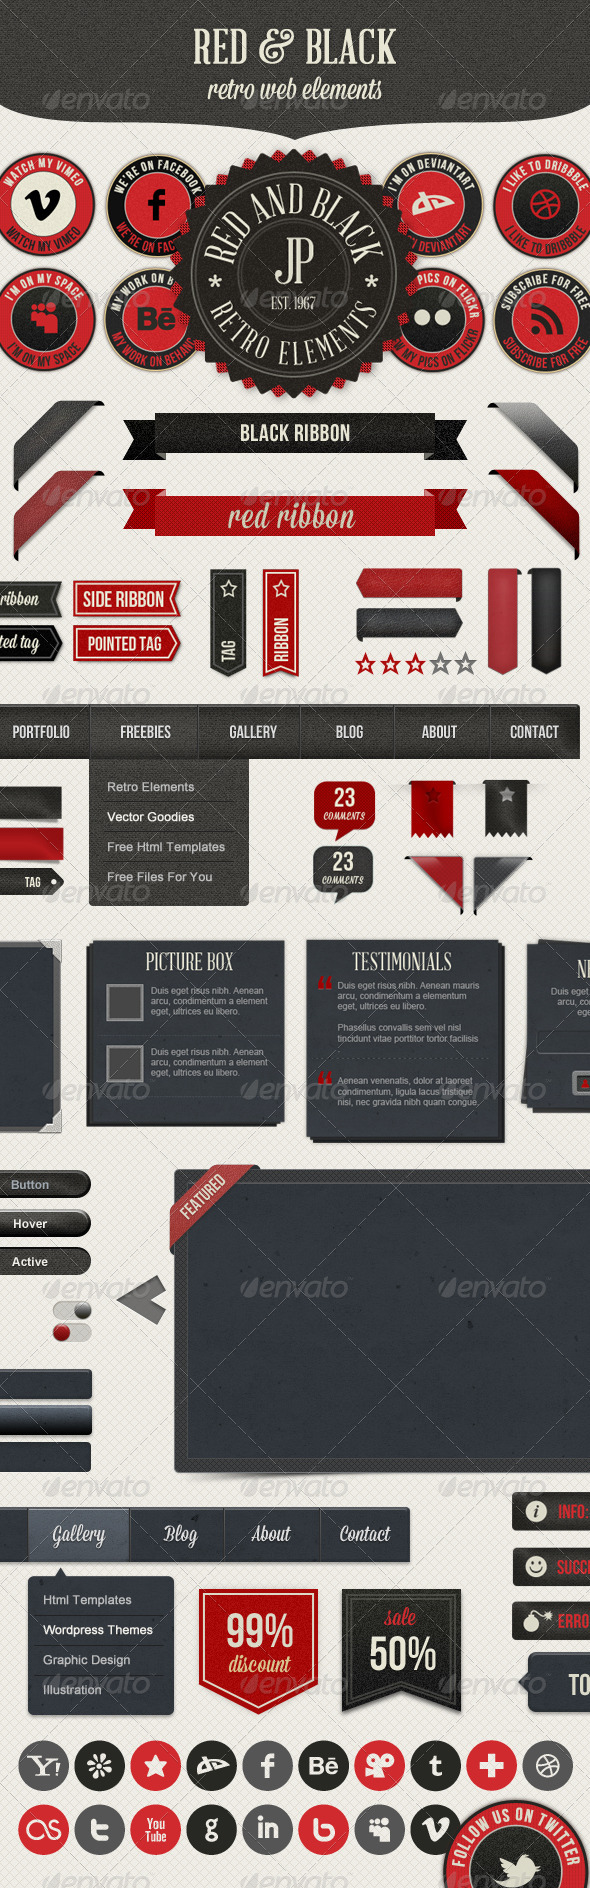 Retro Web Elements - Red & Black Pack - Miscellaneous Web Elements